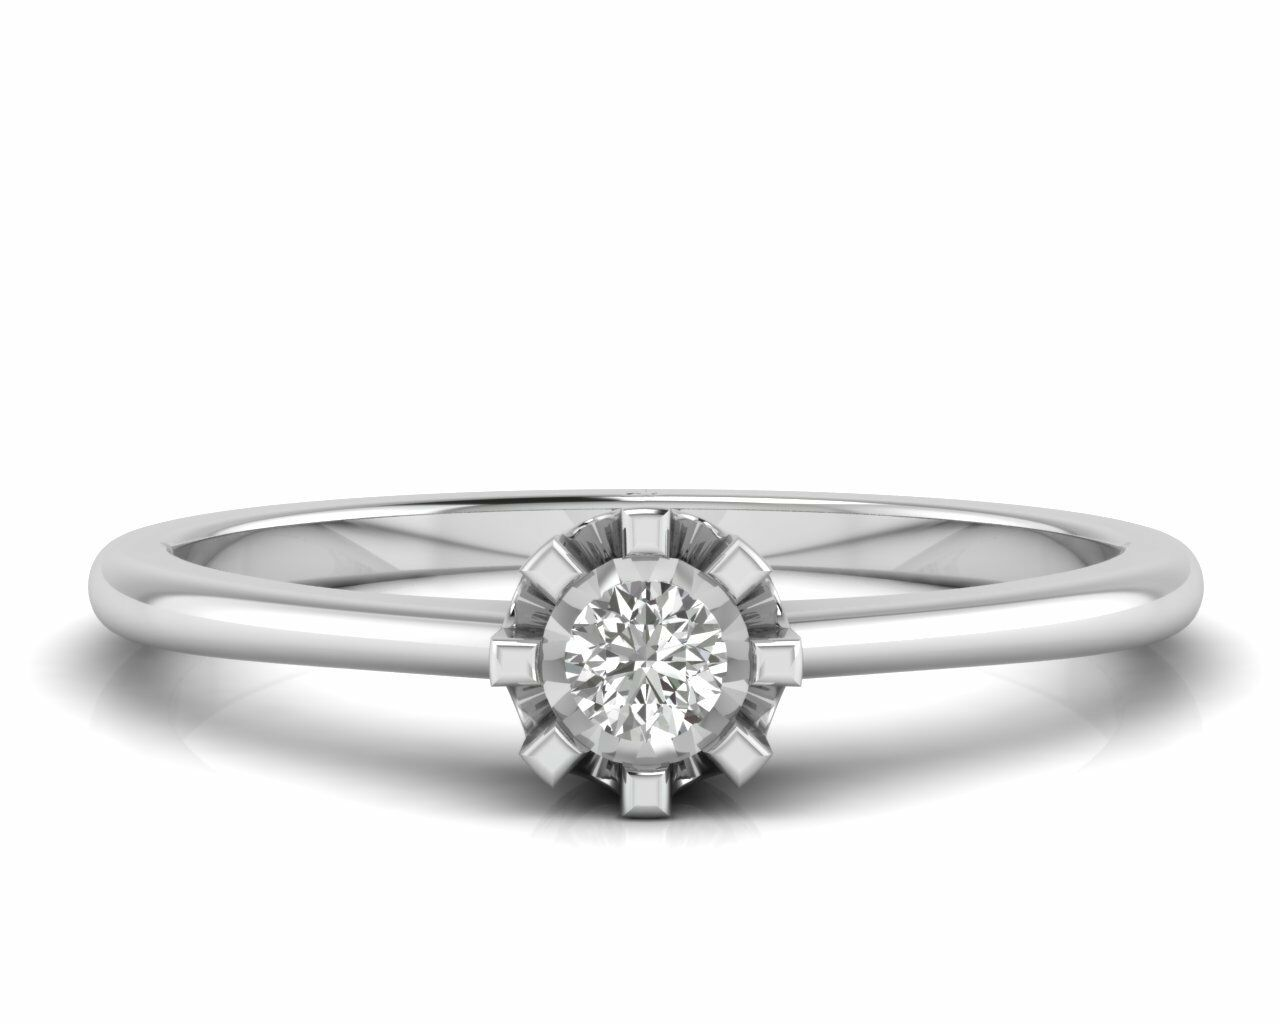 Illusion Head Round Brilliant Cut Diamond Engagement Ring in White & Yellow gold